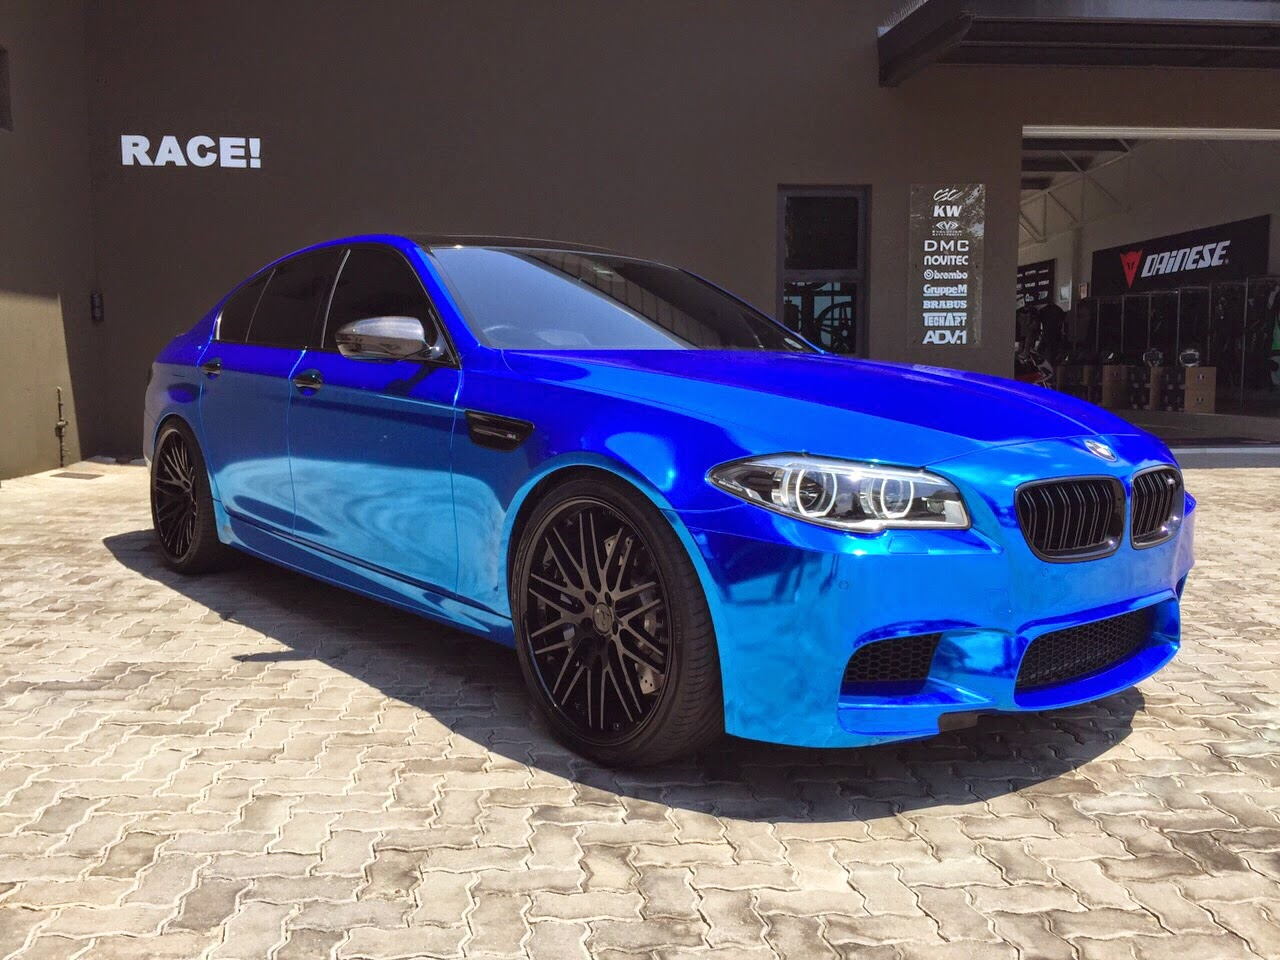 2005 Bmw M5 For Sale In South Africa Thxsiempre